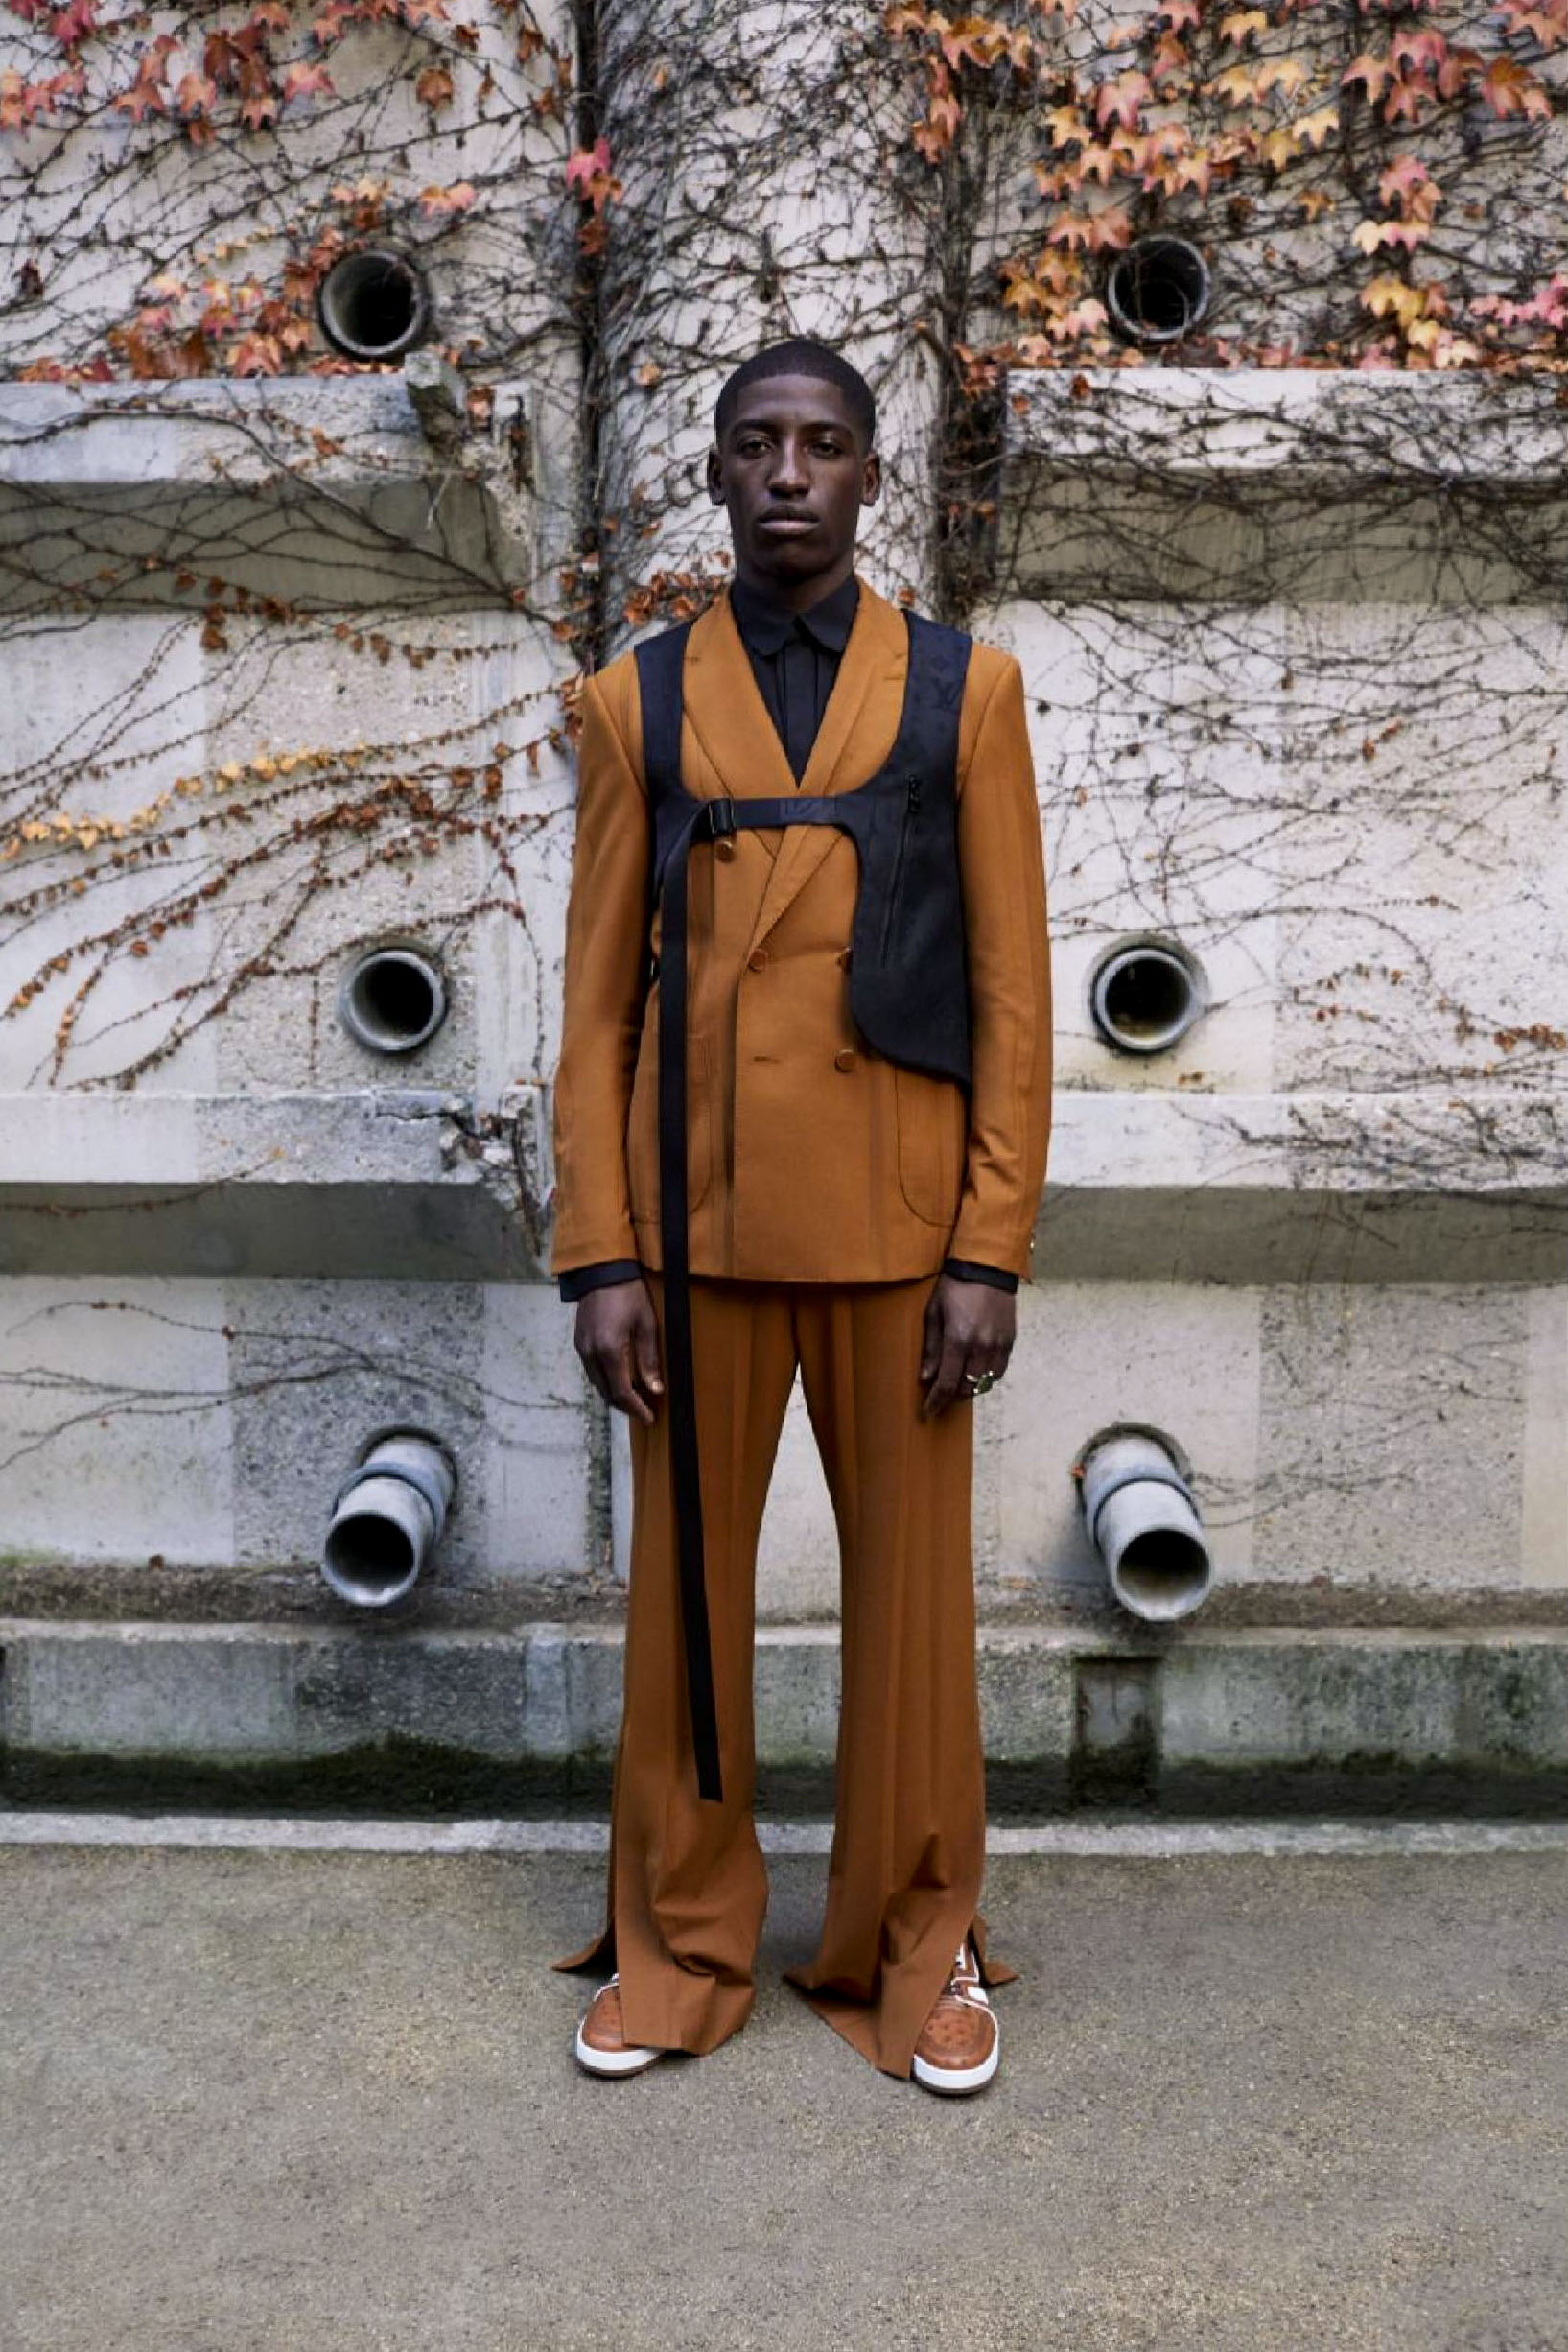 Louis Vuitton Fall/Winter 19 Precollection Lookbook